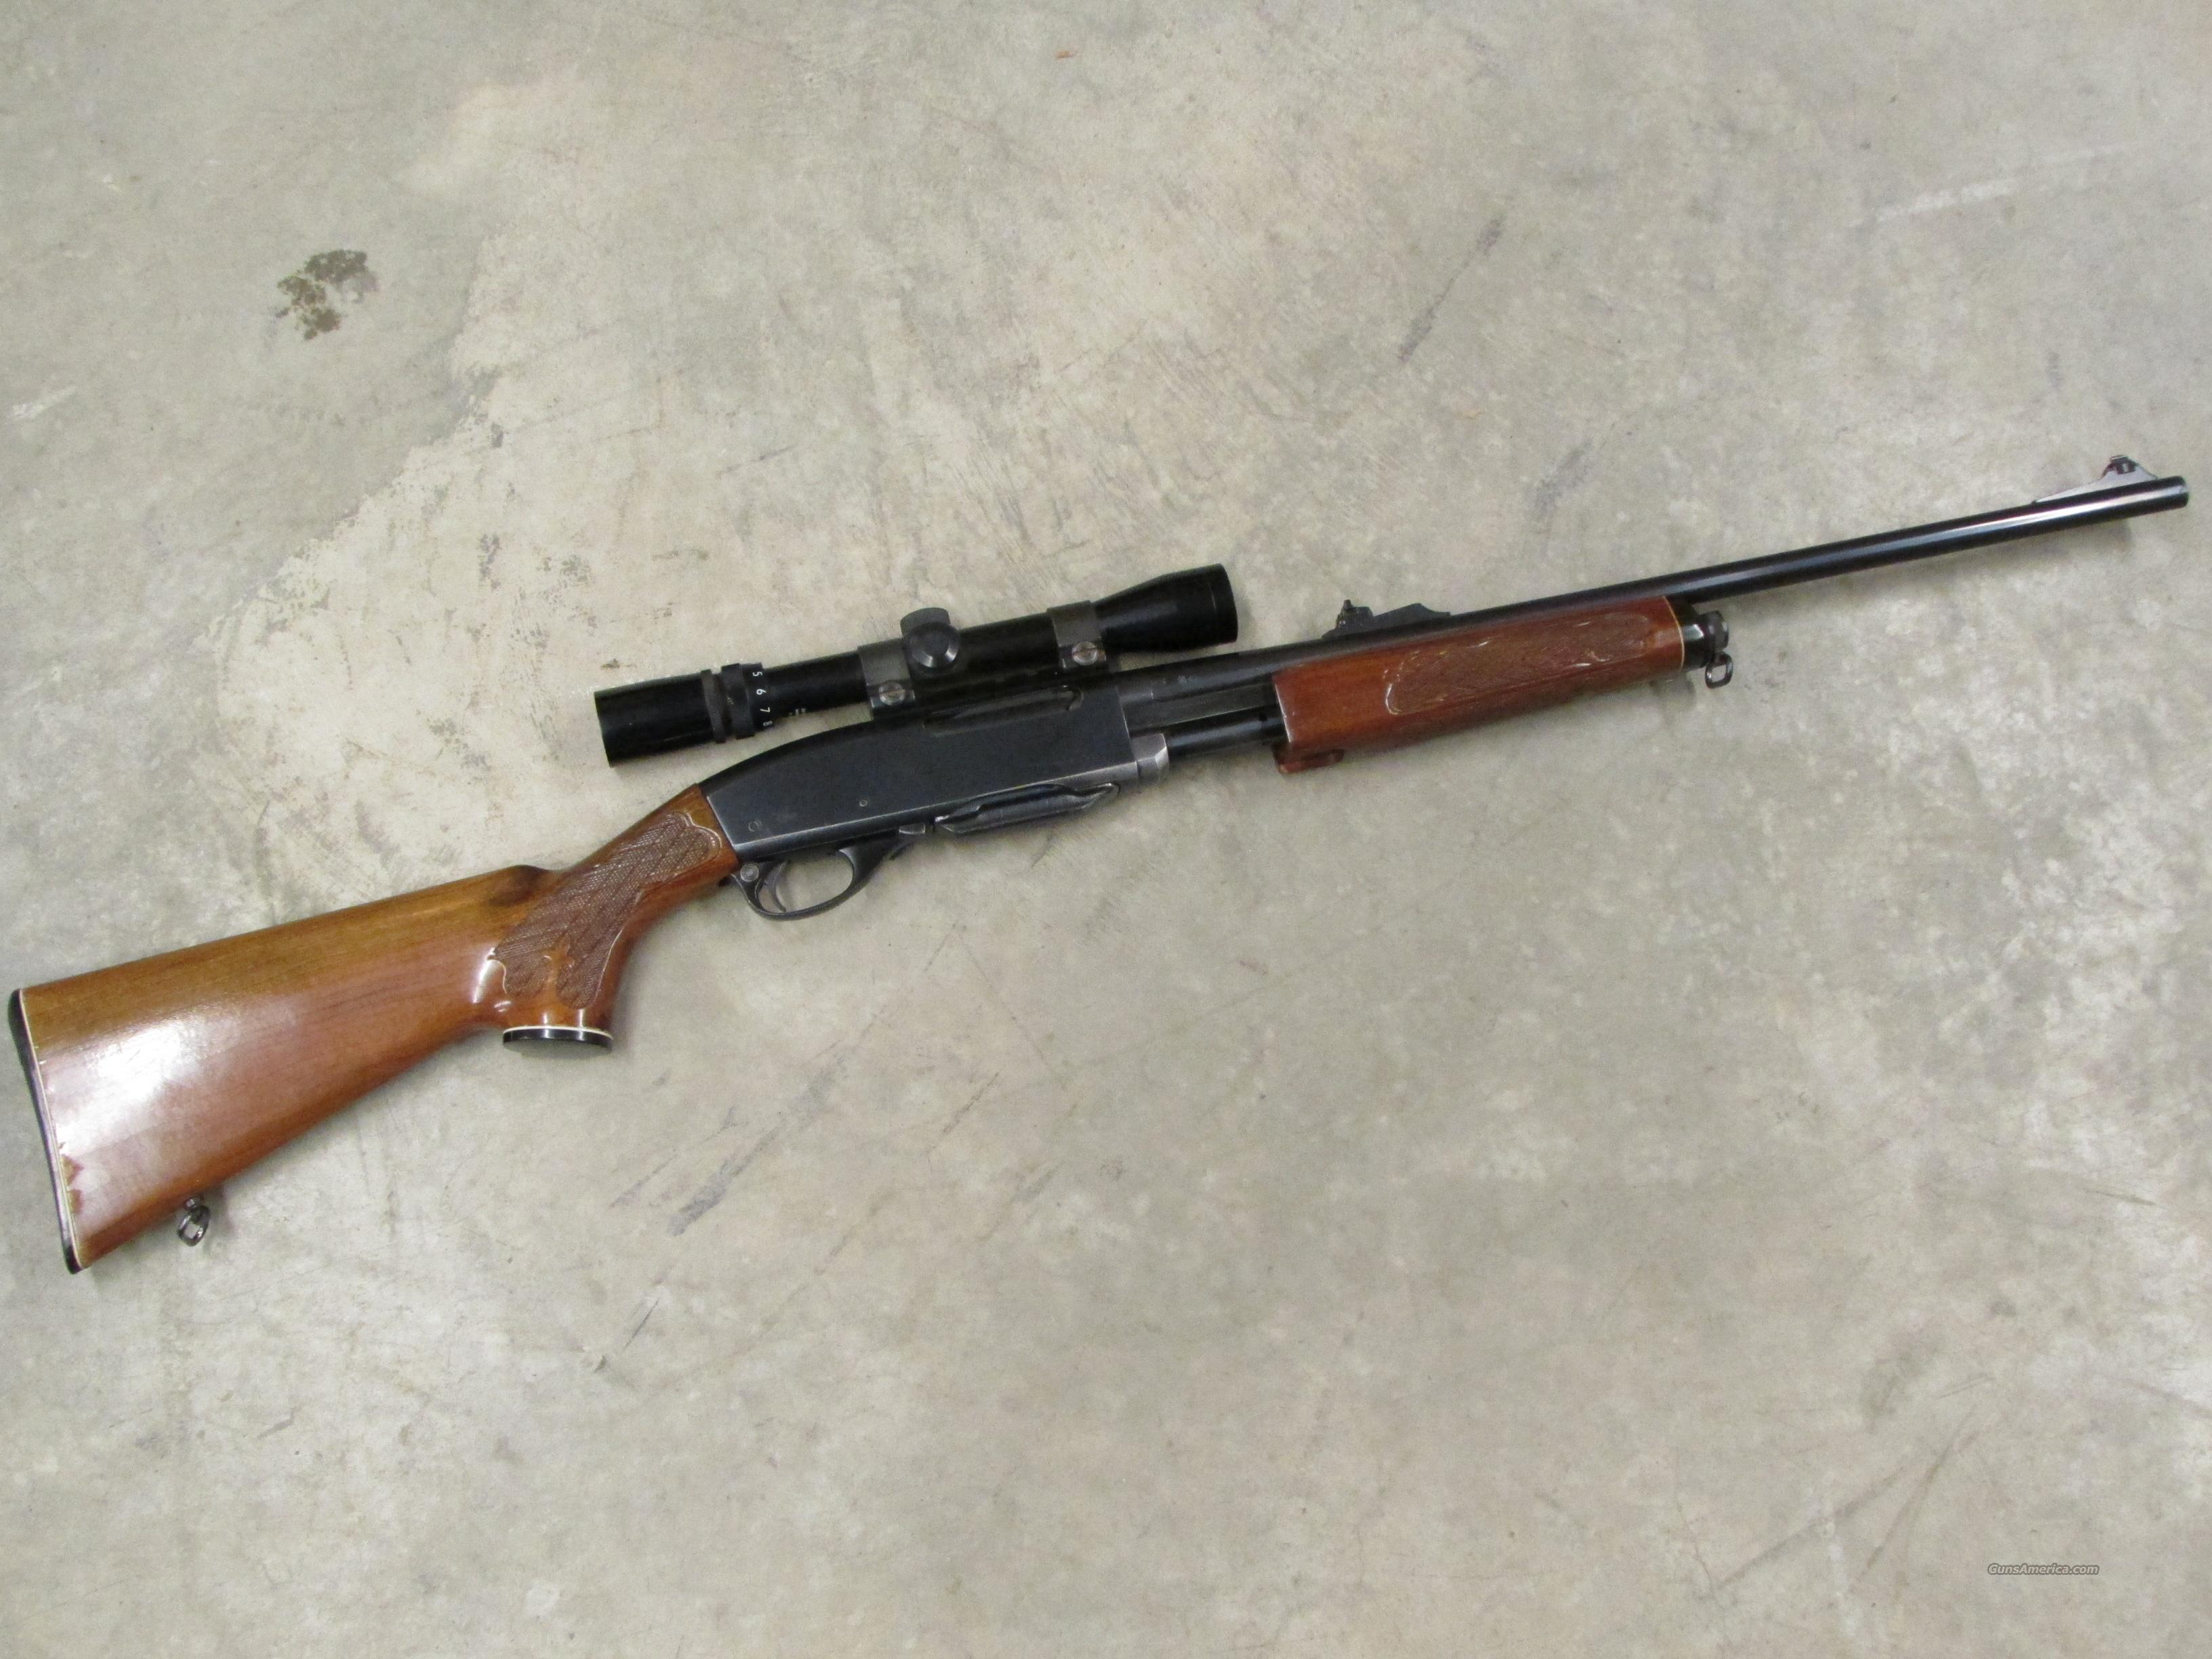 1977 Remington Gamemaster Model 760 Pump-Action... for sale